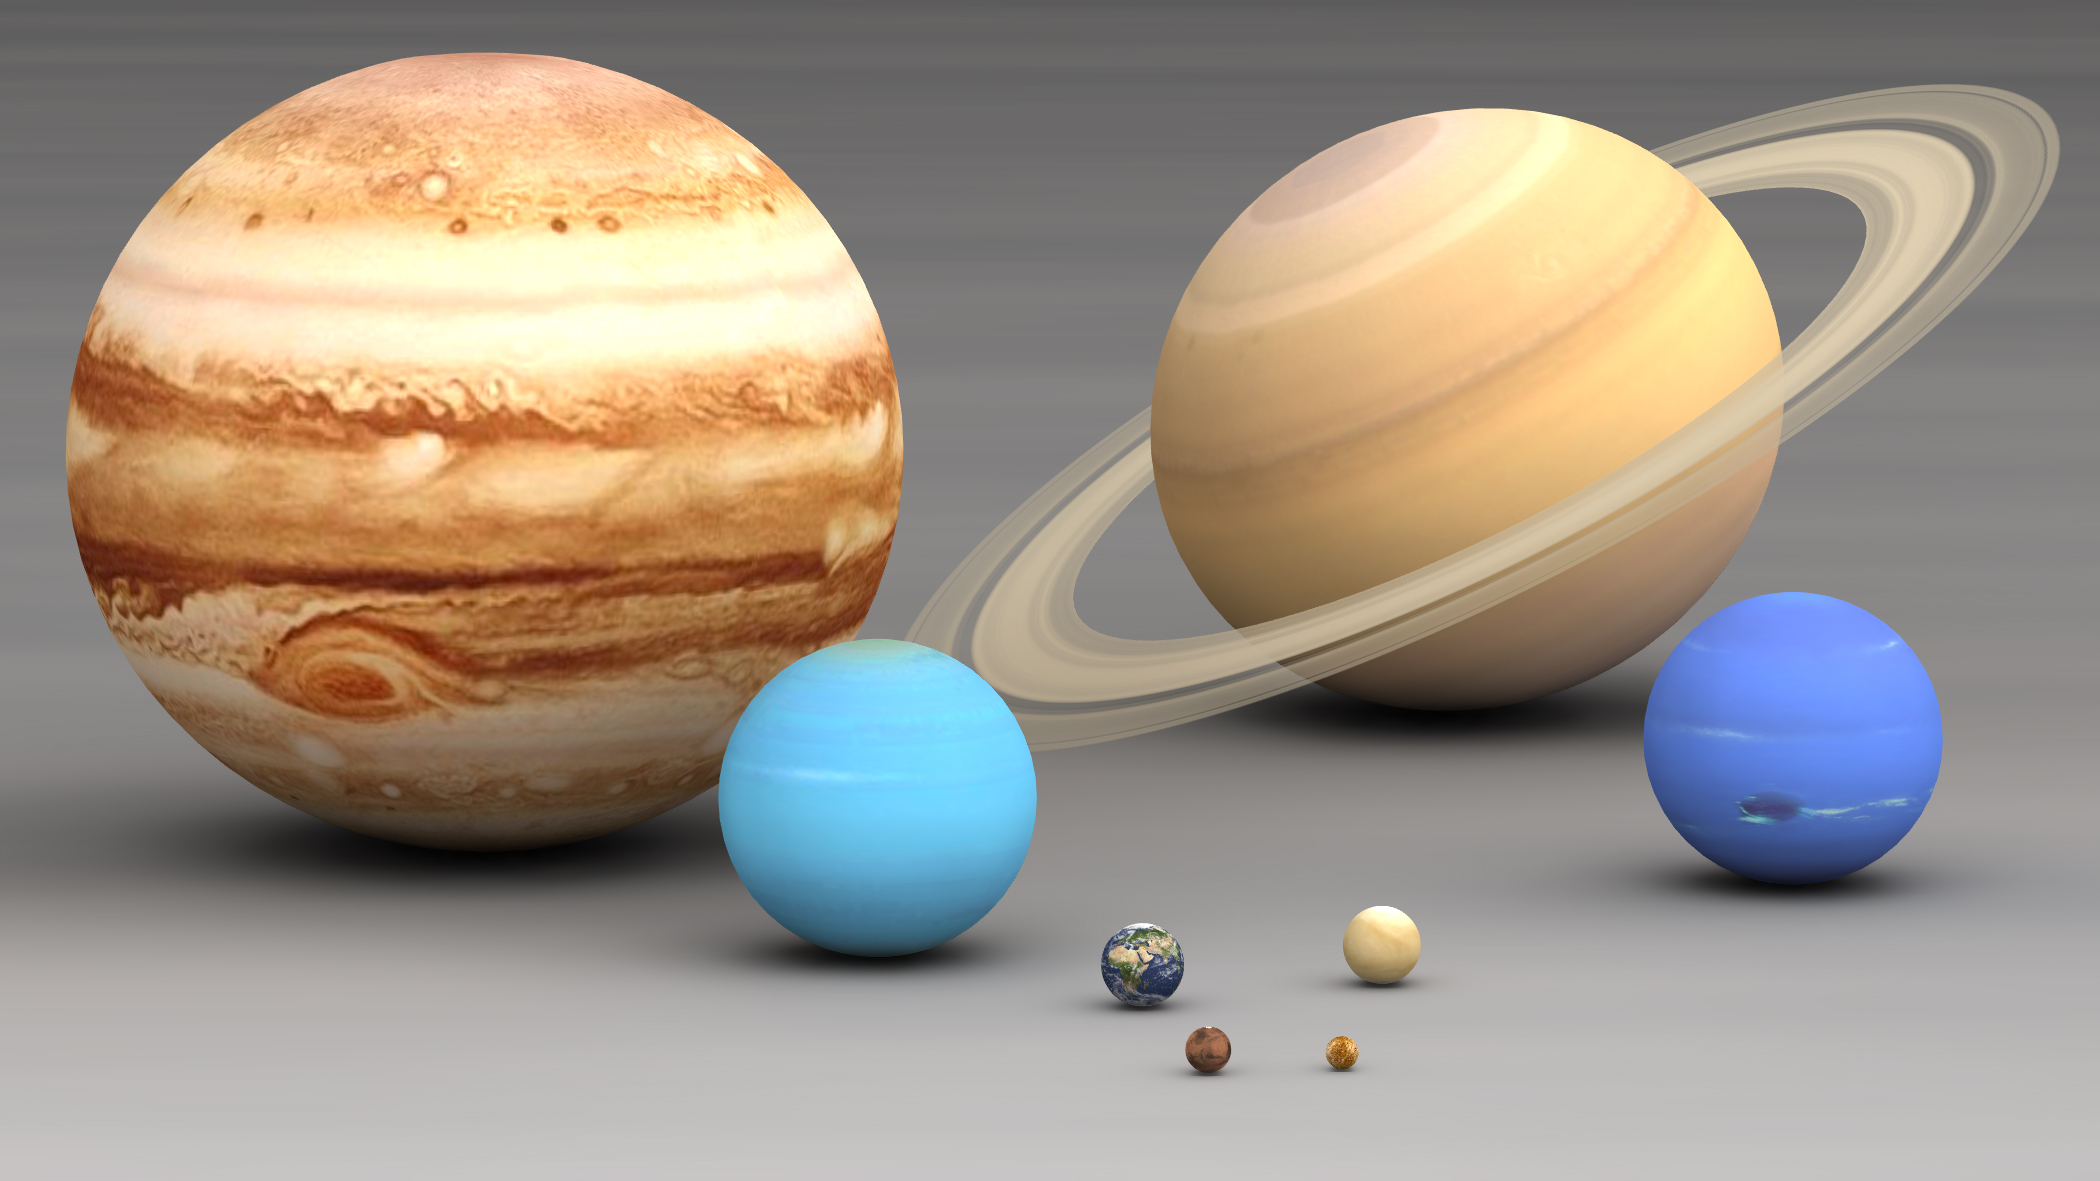 Size Comparison Of Planets And Sun In The Solar System